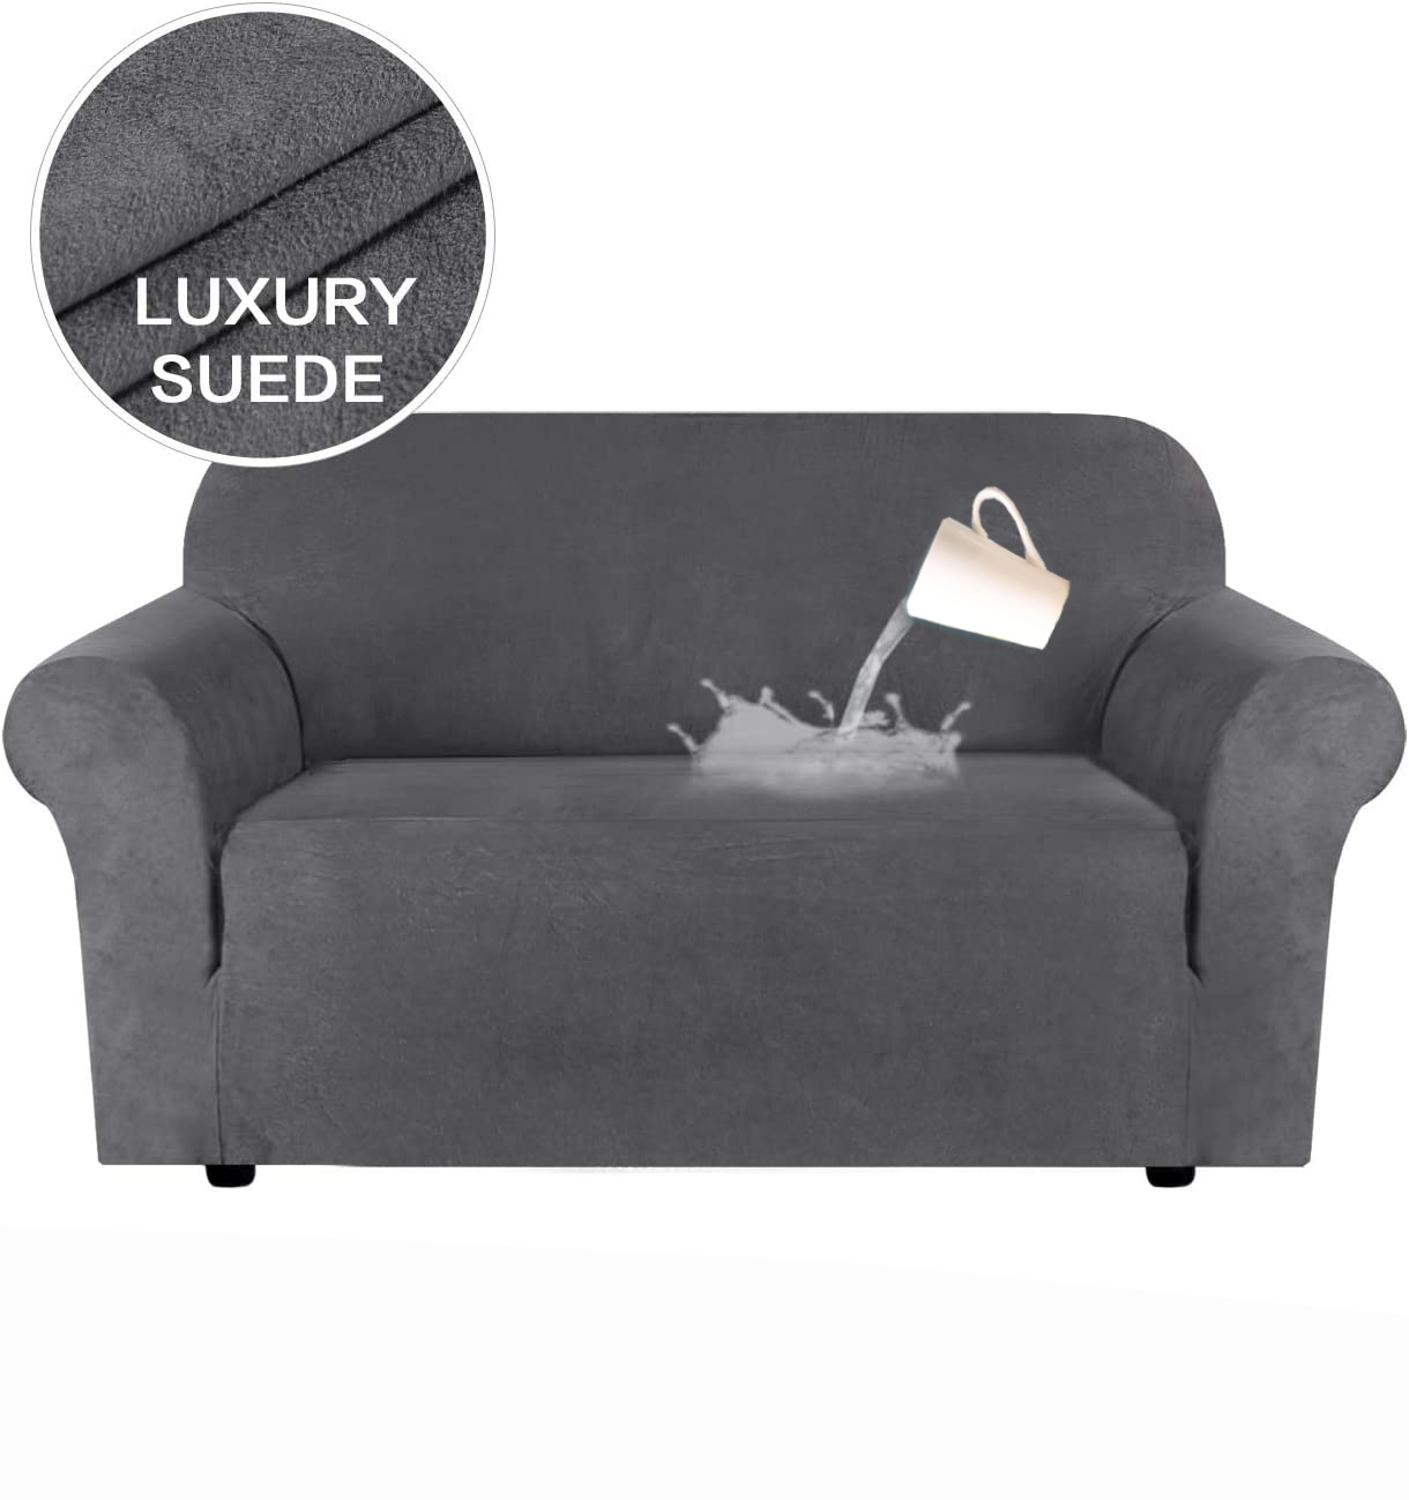 Suede Fabric Chair Cover Sofa Slipcover